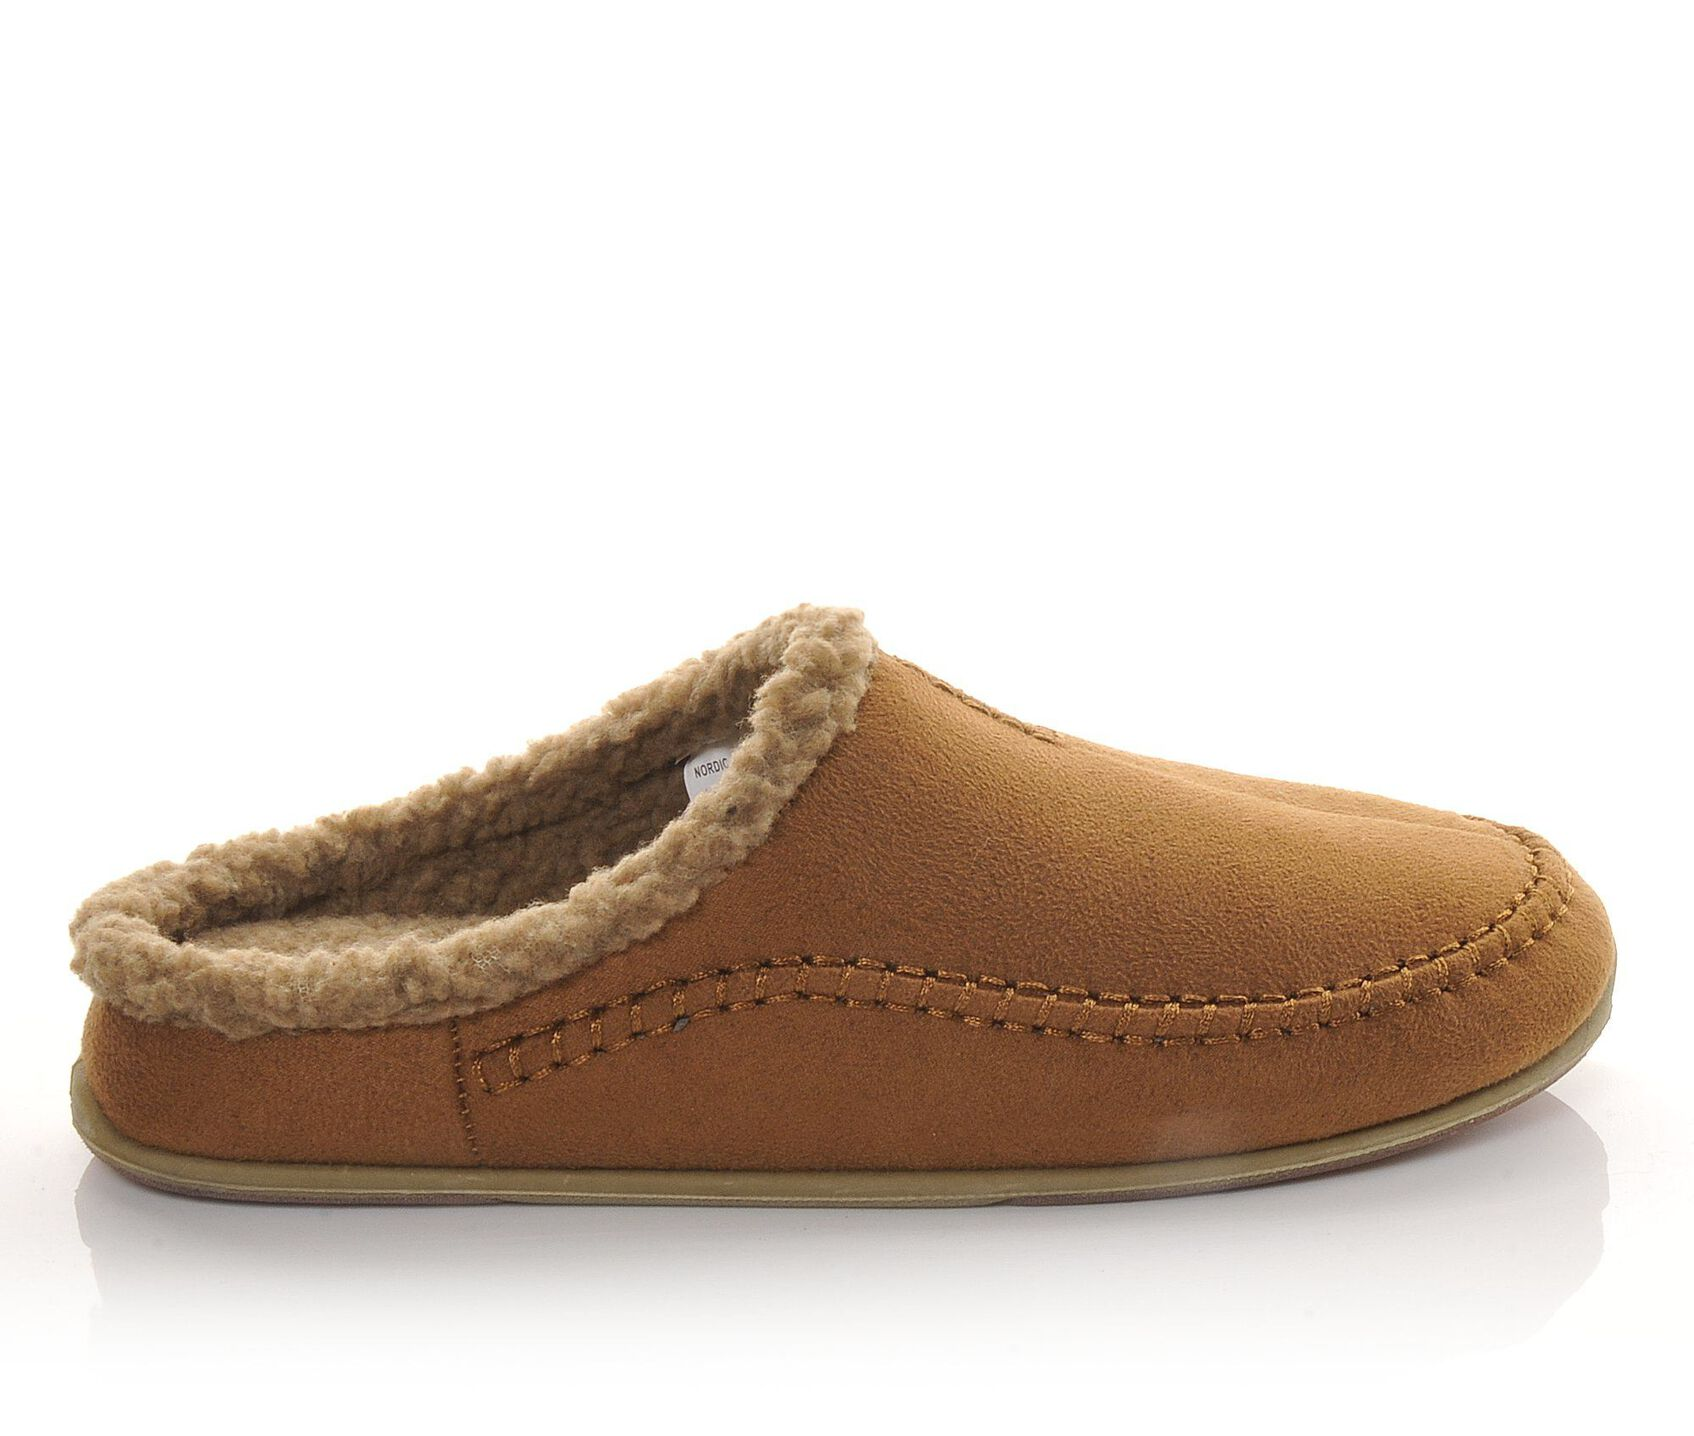 b3331b5ce Deer Stags Nordic Slippers. Previous